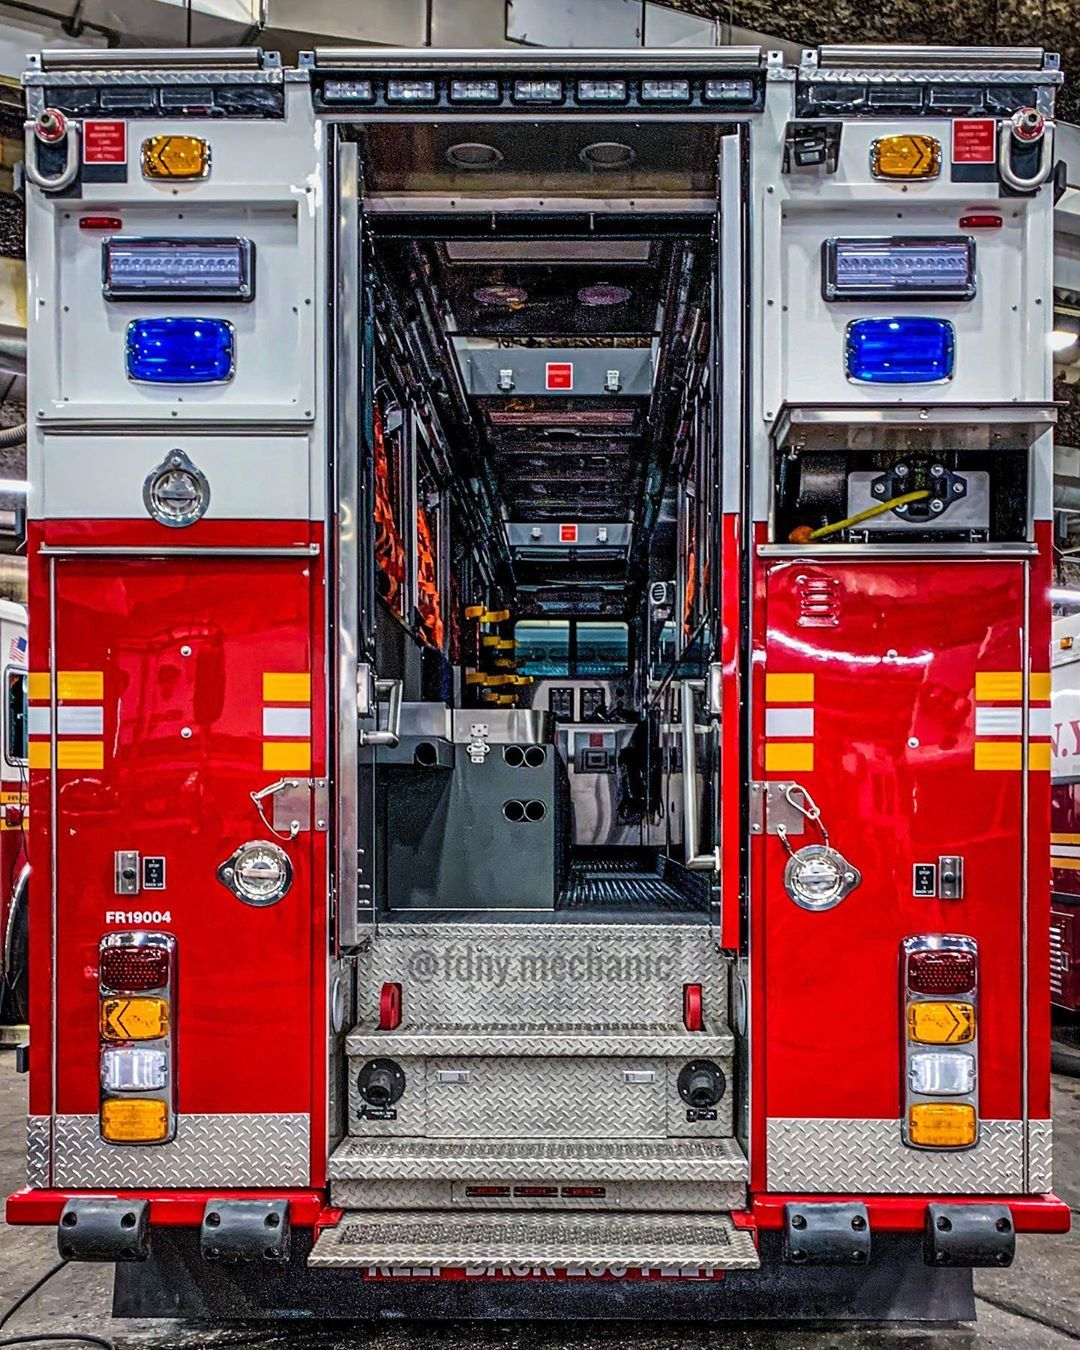 Pin by Nick Magruder on FireTrucks in 2020 Fire equipment